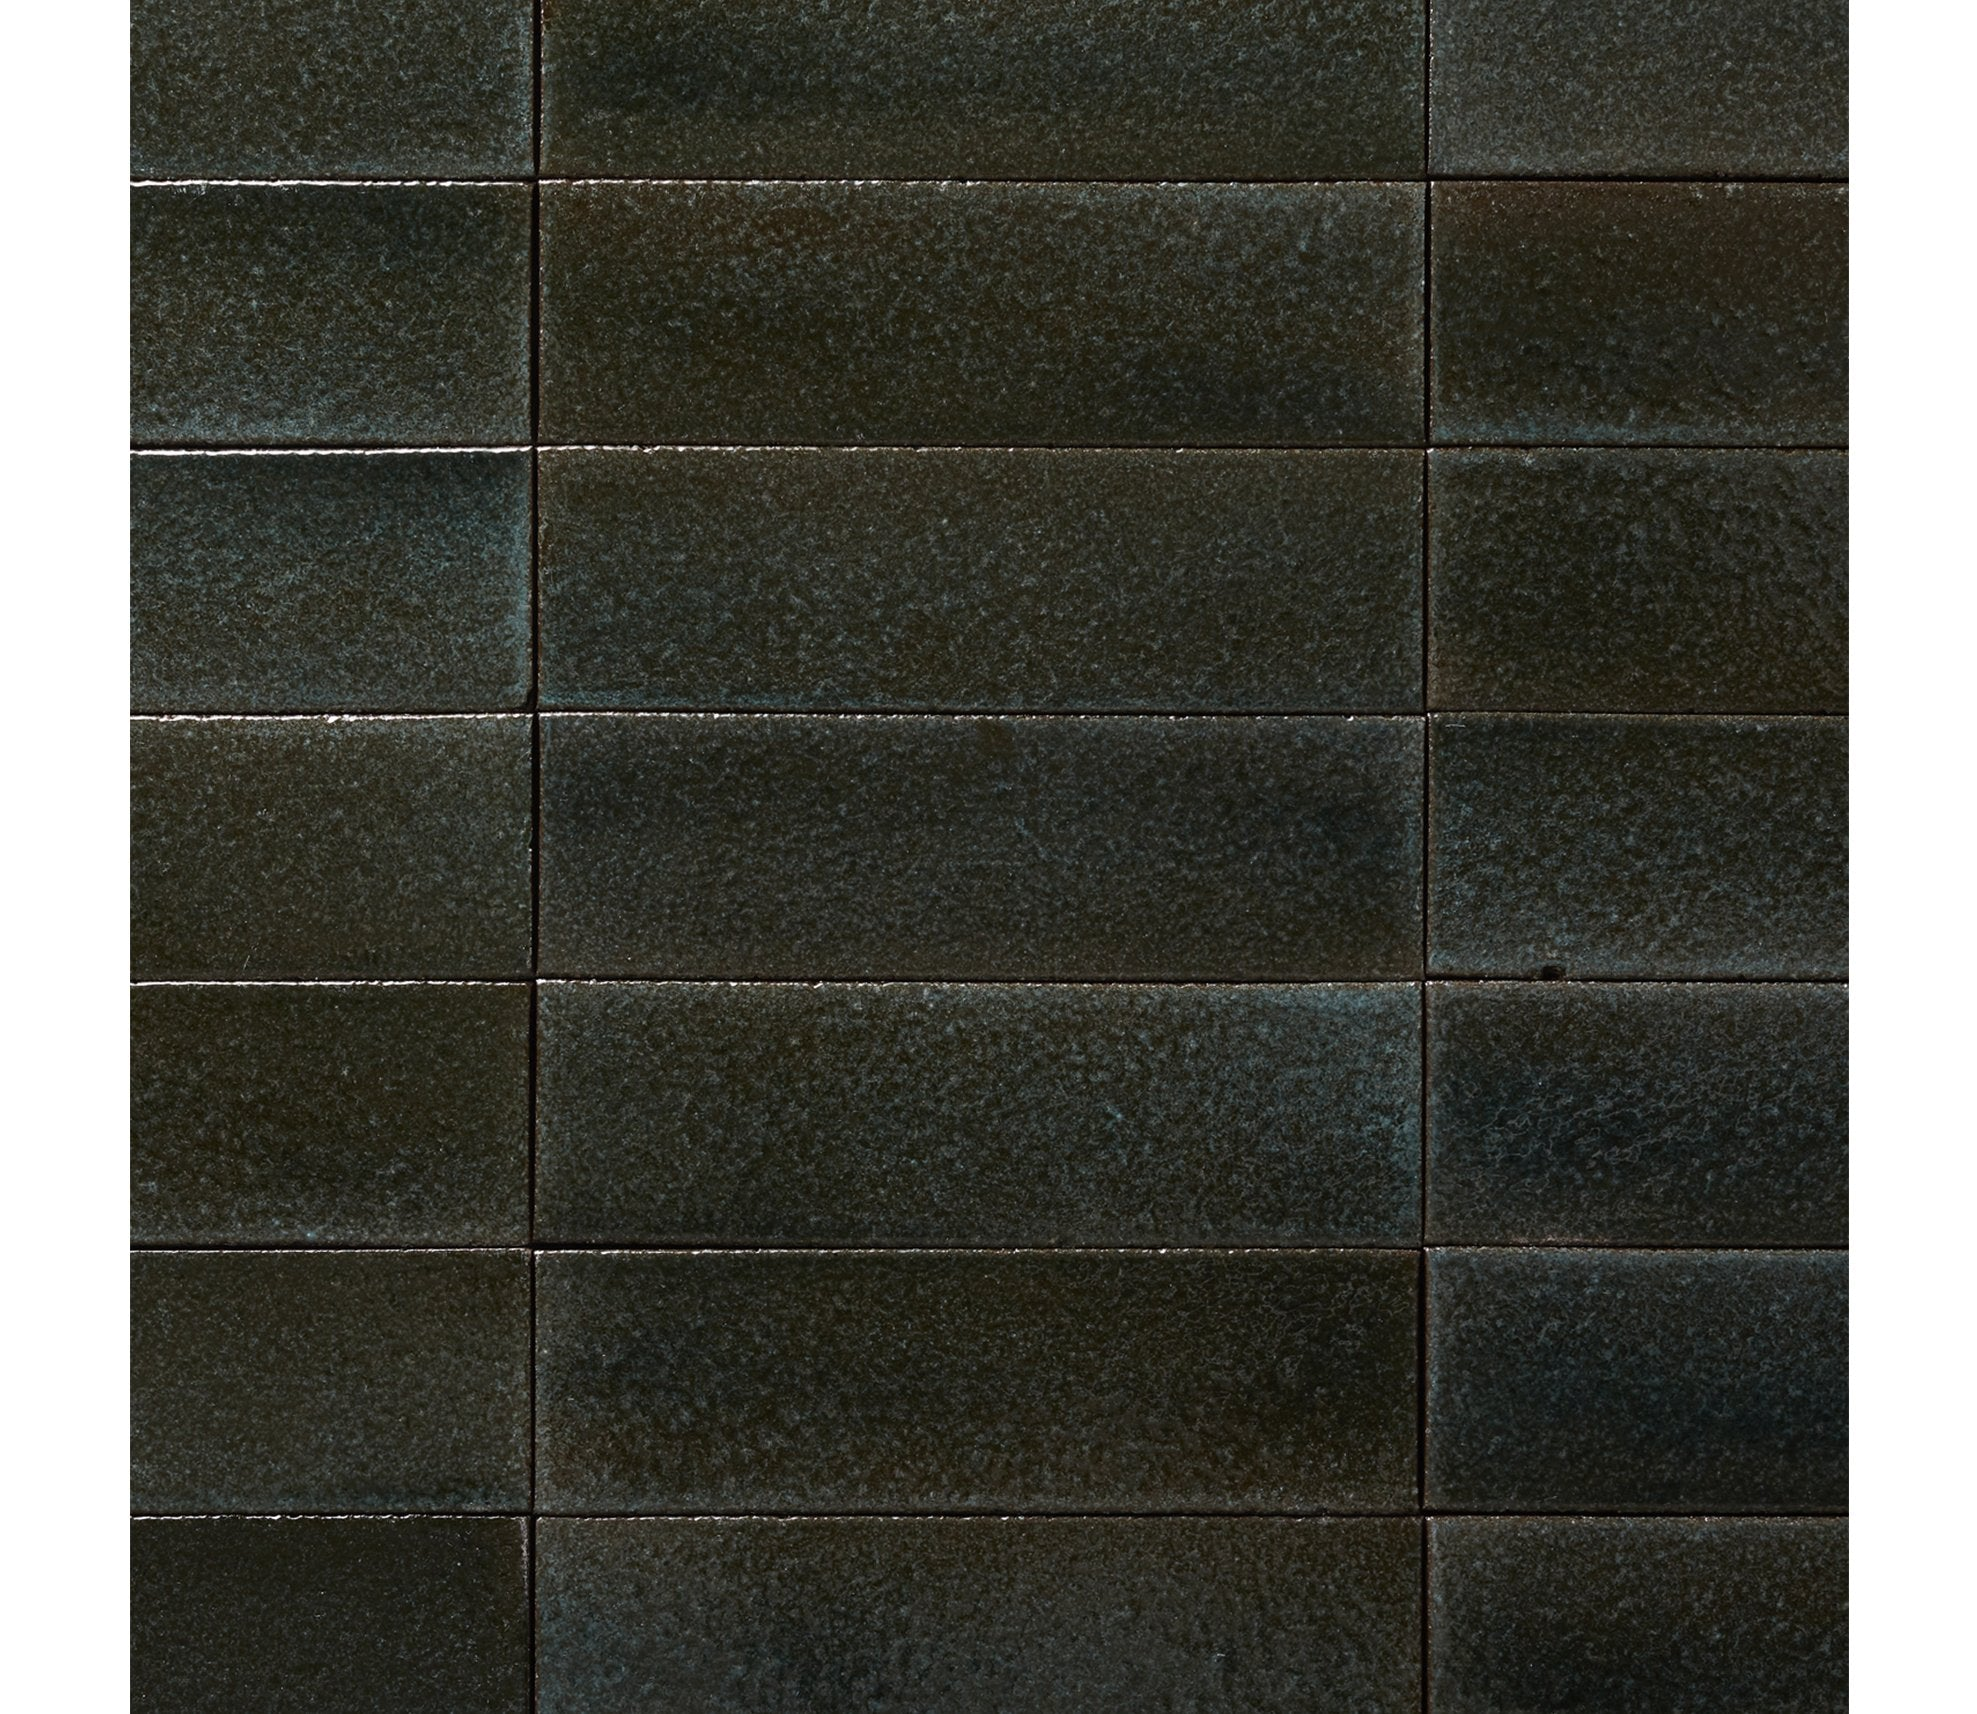 Terra Firma Glazed Bricks Product Image 49